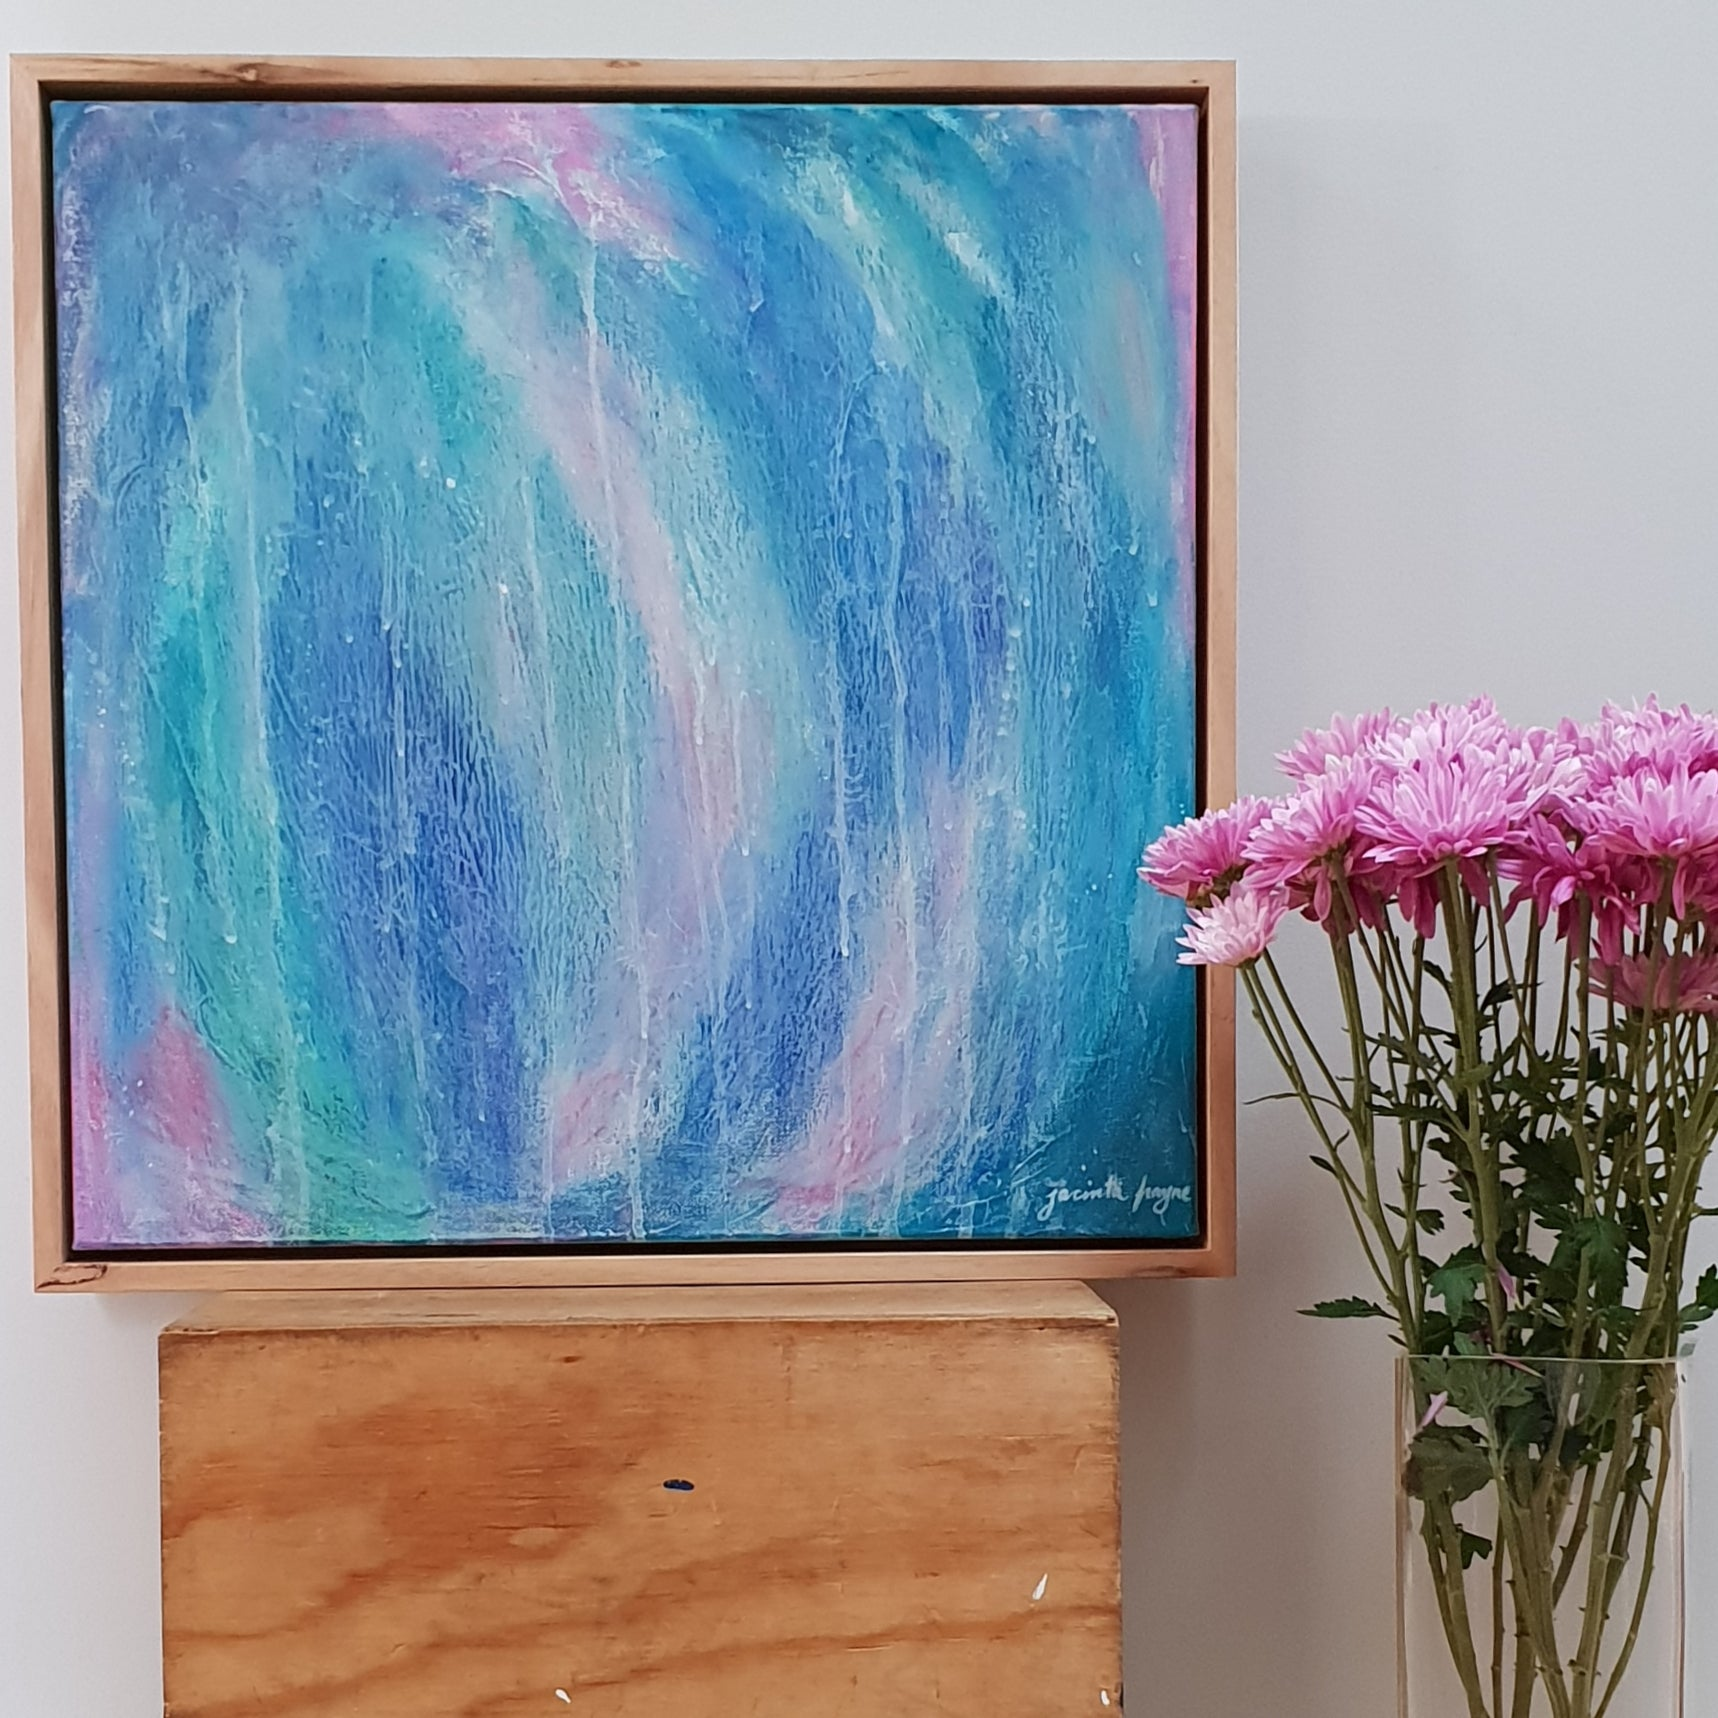 'Rain Dance in Fairy Land' Blue and pink modern abstract art work by Melbourne artist Jacinta Payne